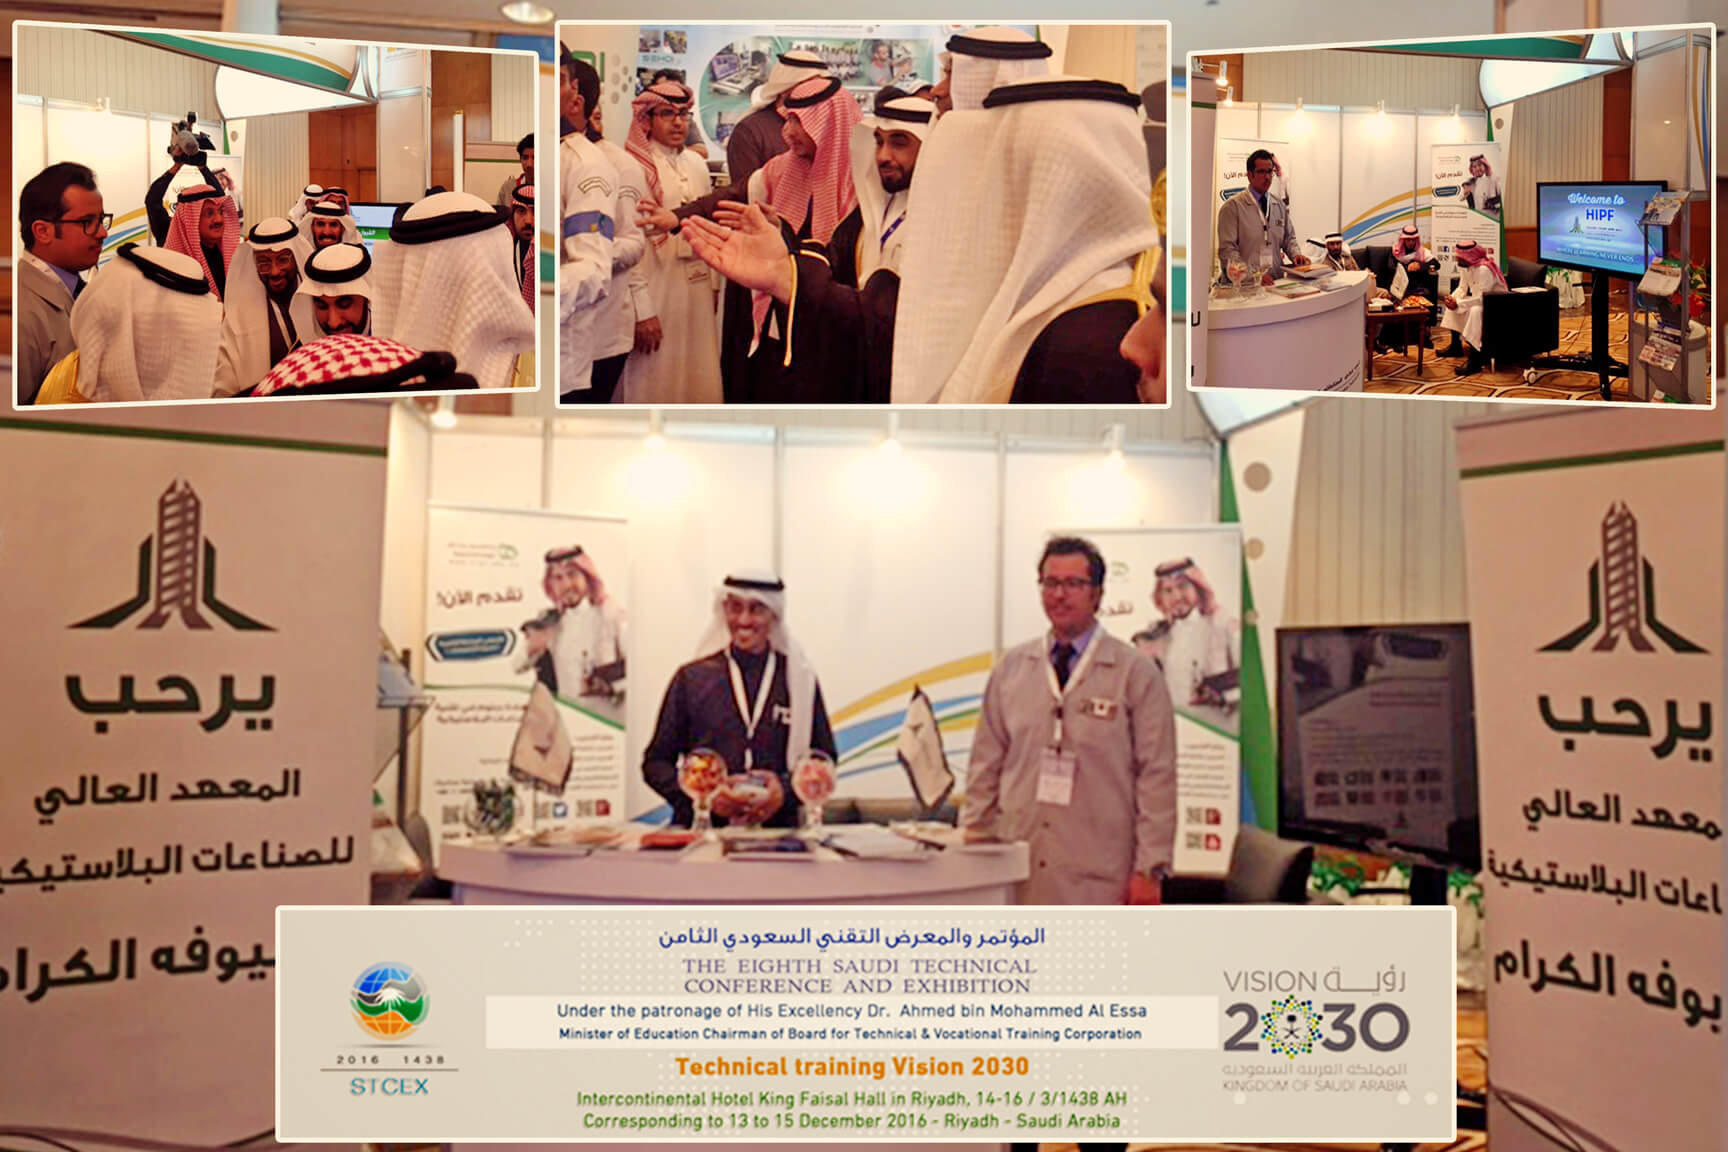 The participation of HIPF in the Eighth Saudi Technical Conference and Exhibition (STCEX)